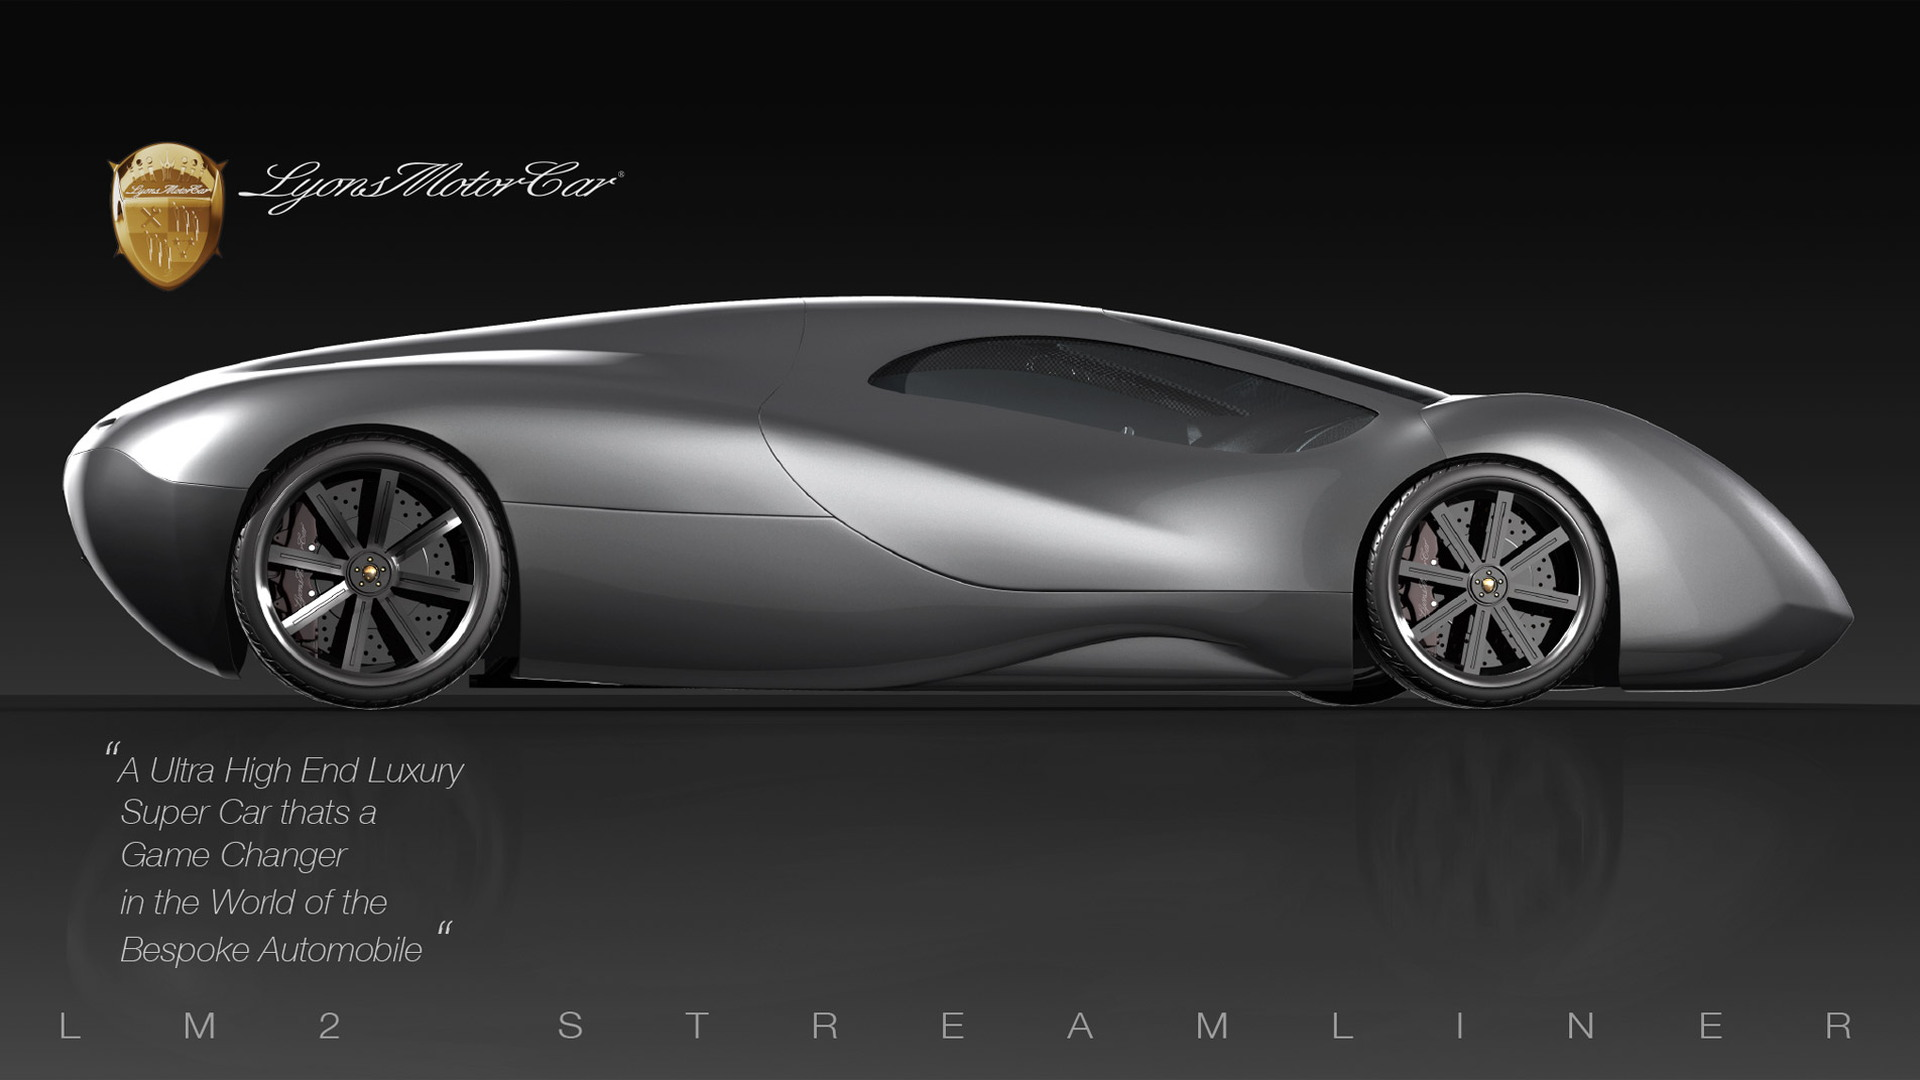 LM2 Streamliner from Lyons Motor Car